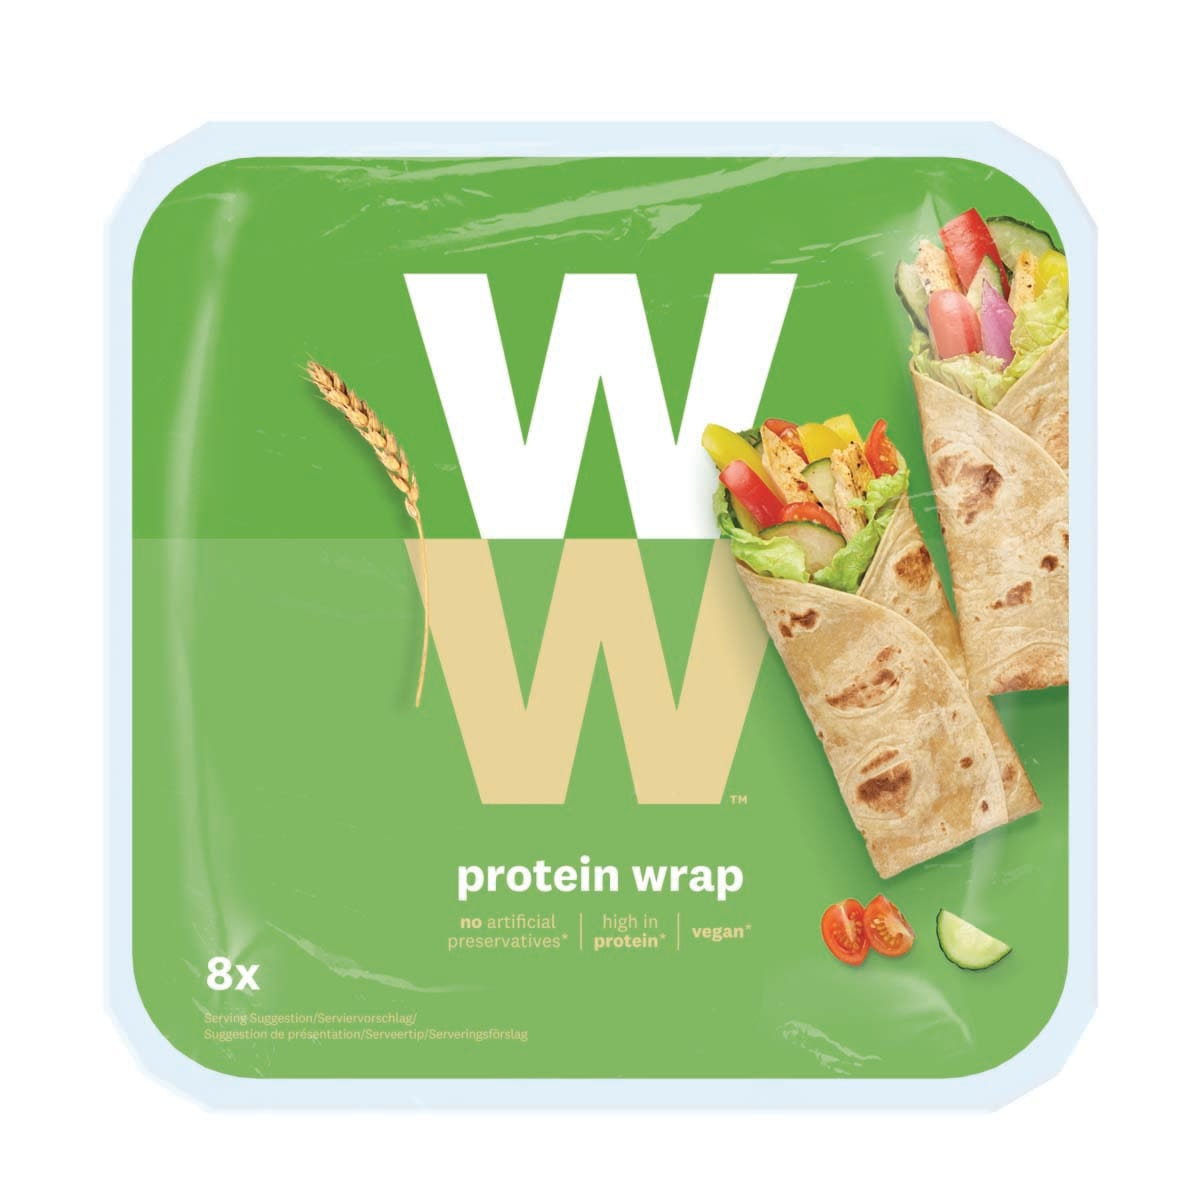 Pack of 8, WW Protein Wrap, made with quinoa flour, perfect for your fillings, high in protein, 3 SmartPoints values, suitable for vegans